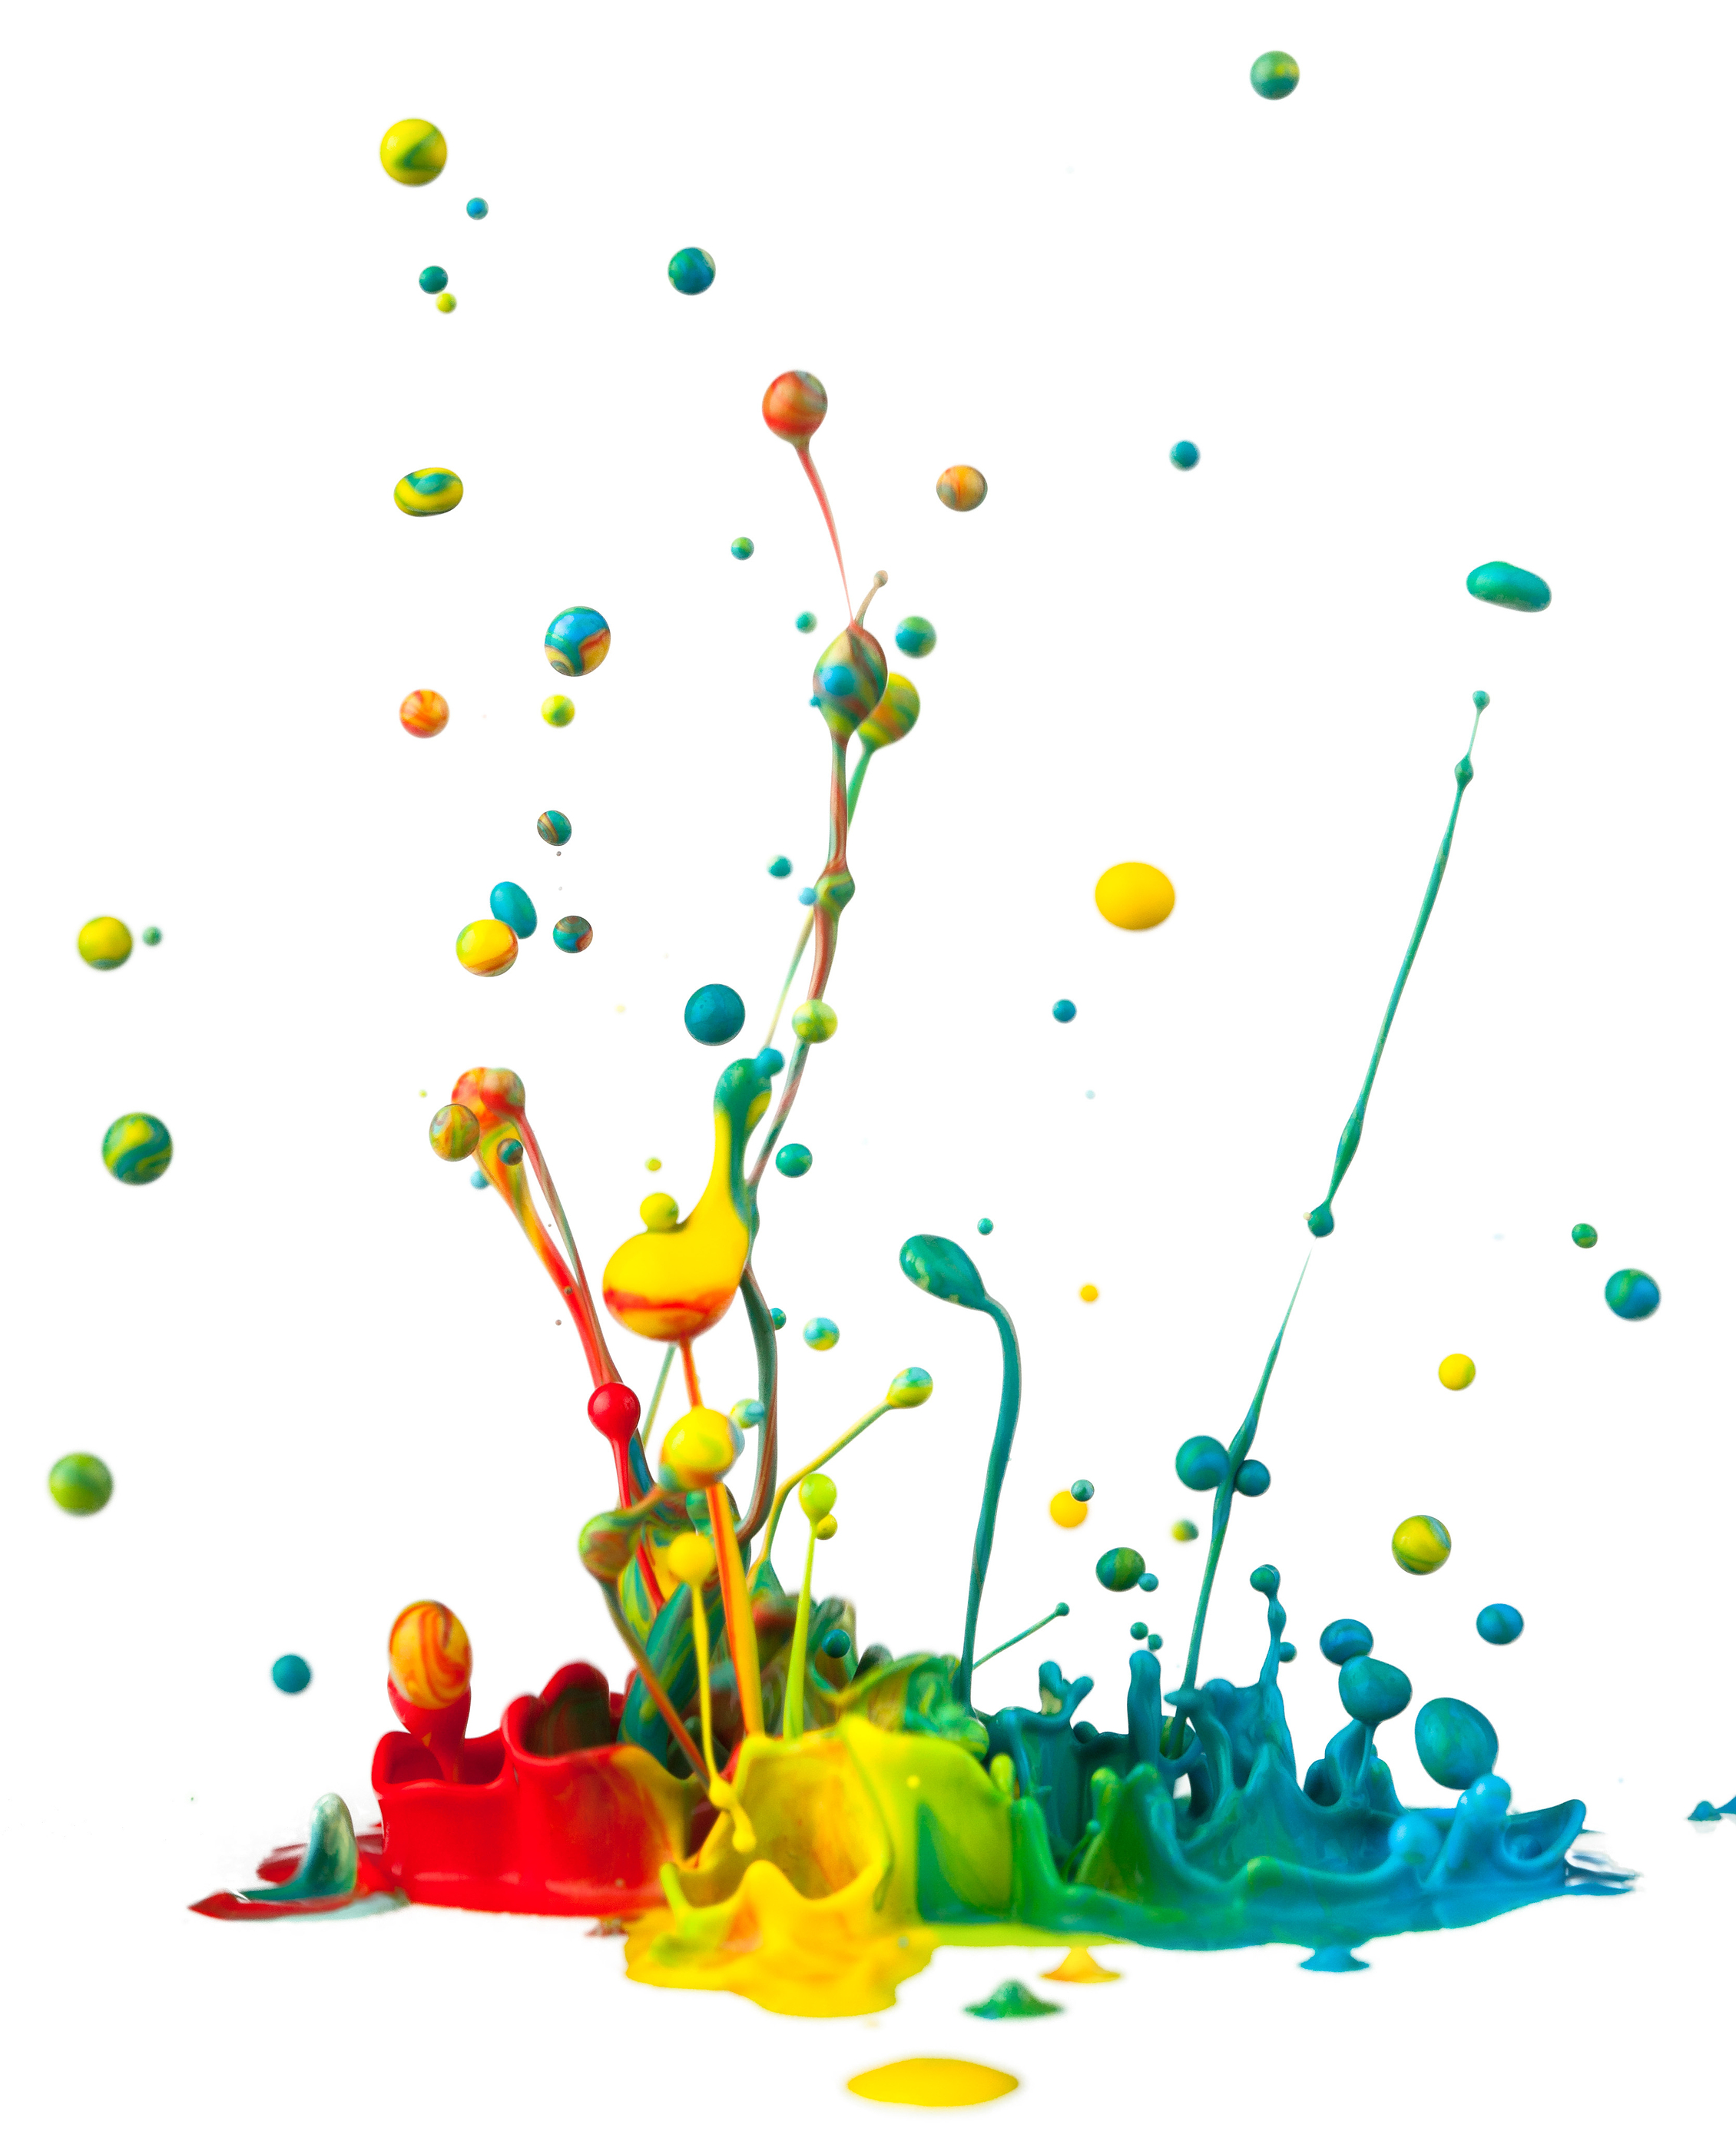 Paints, Coatings and Printing